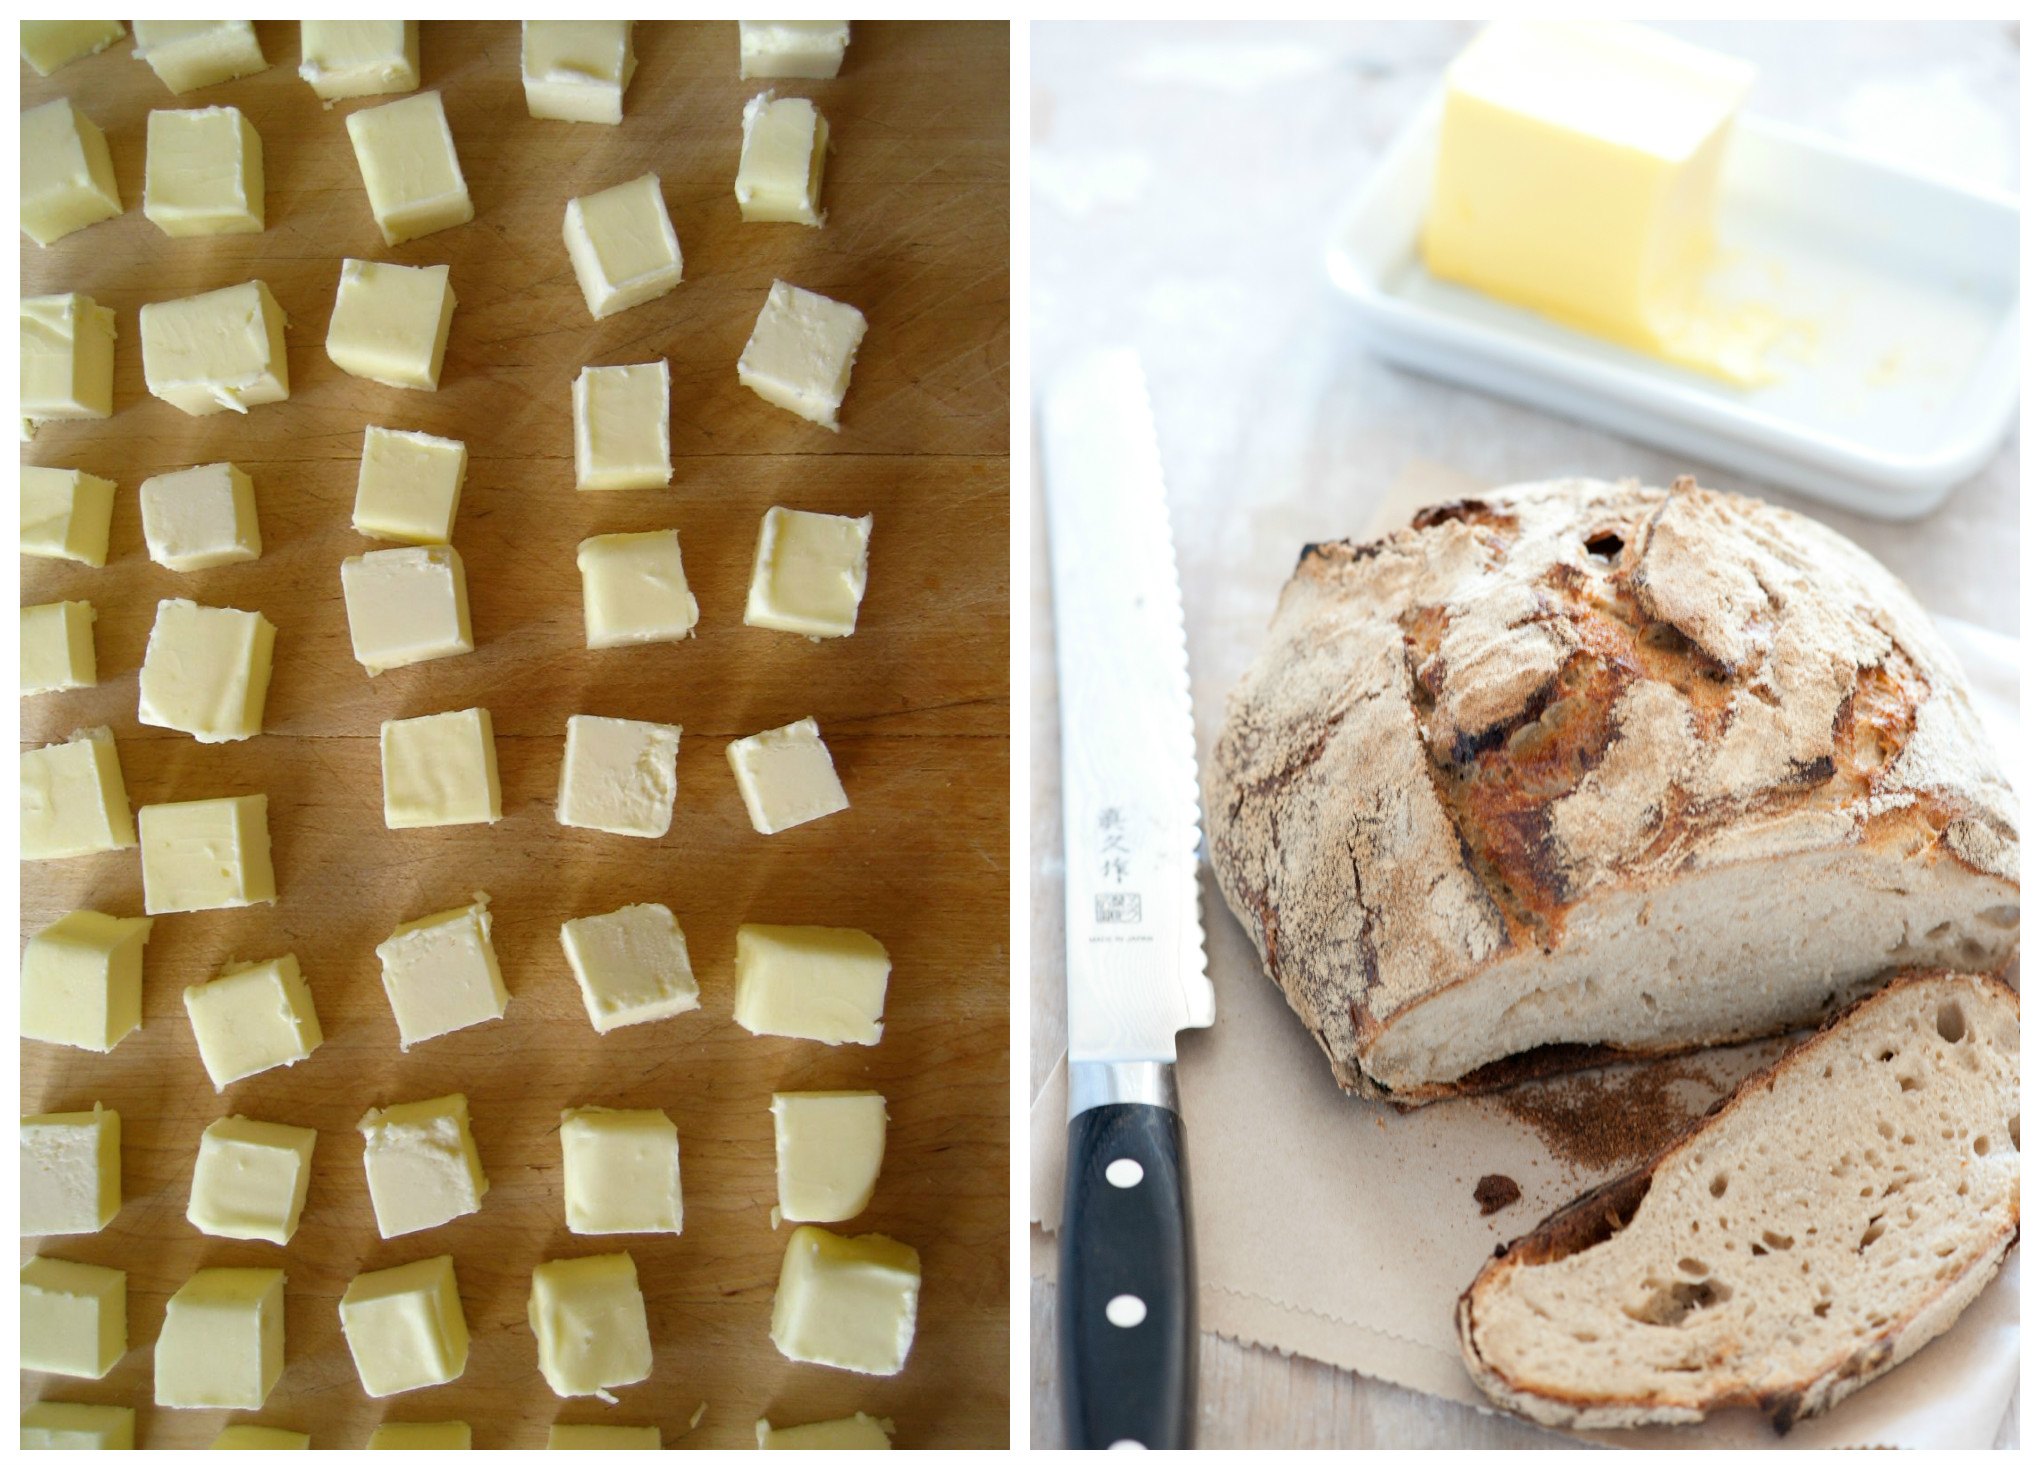 Why does French butter taste so good? Because it's homemade like these little squares (left) and spread on a rustic loaf of bread (right), it tastes even better.